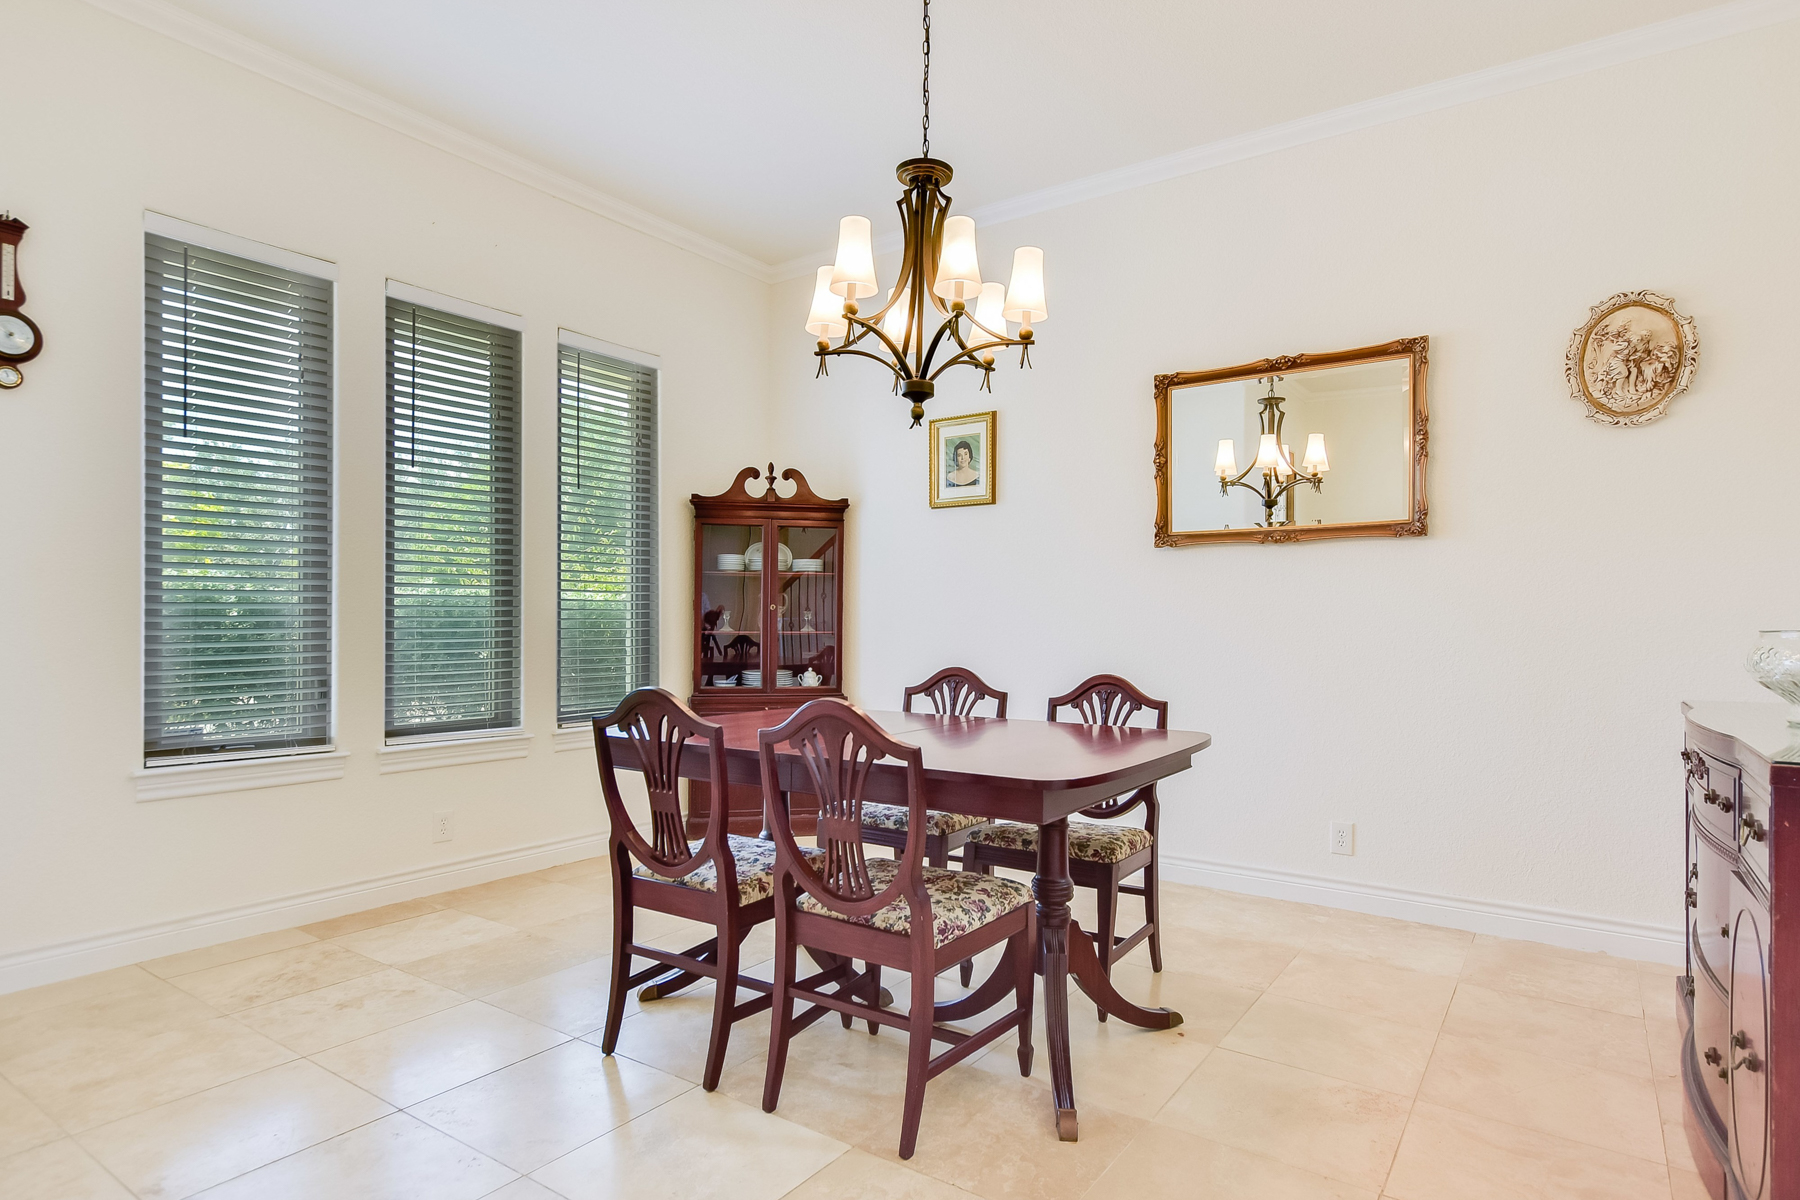 Additional photo for property listing at Beautiful Home in Horseshoe Bay West 3504 Douglas Dr Horseshoe Bay, Texas 78657 Estados Unidos